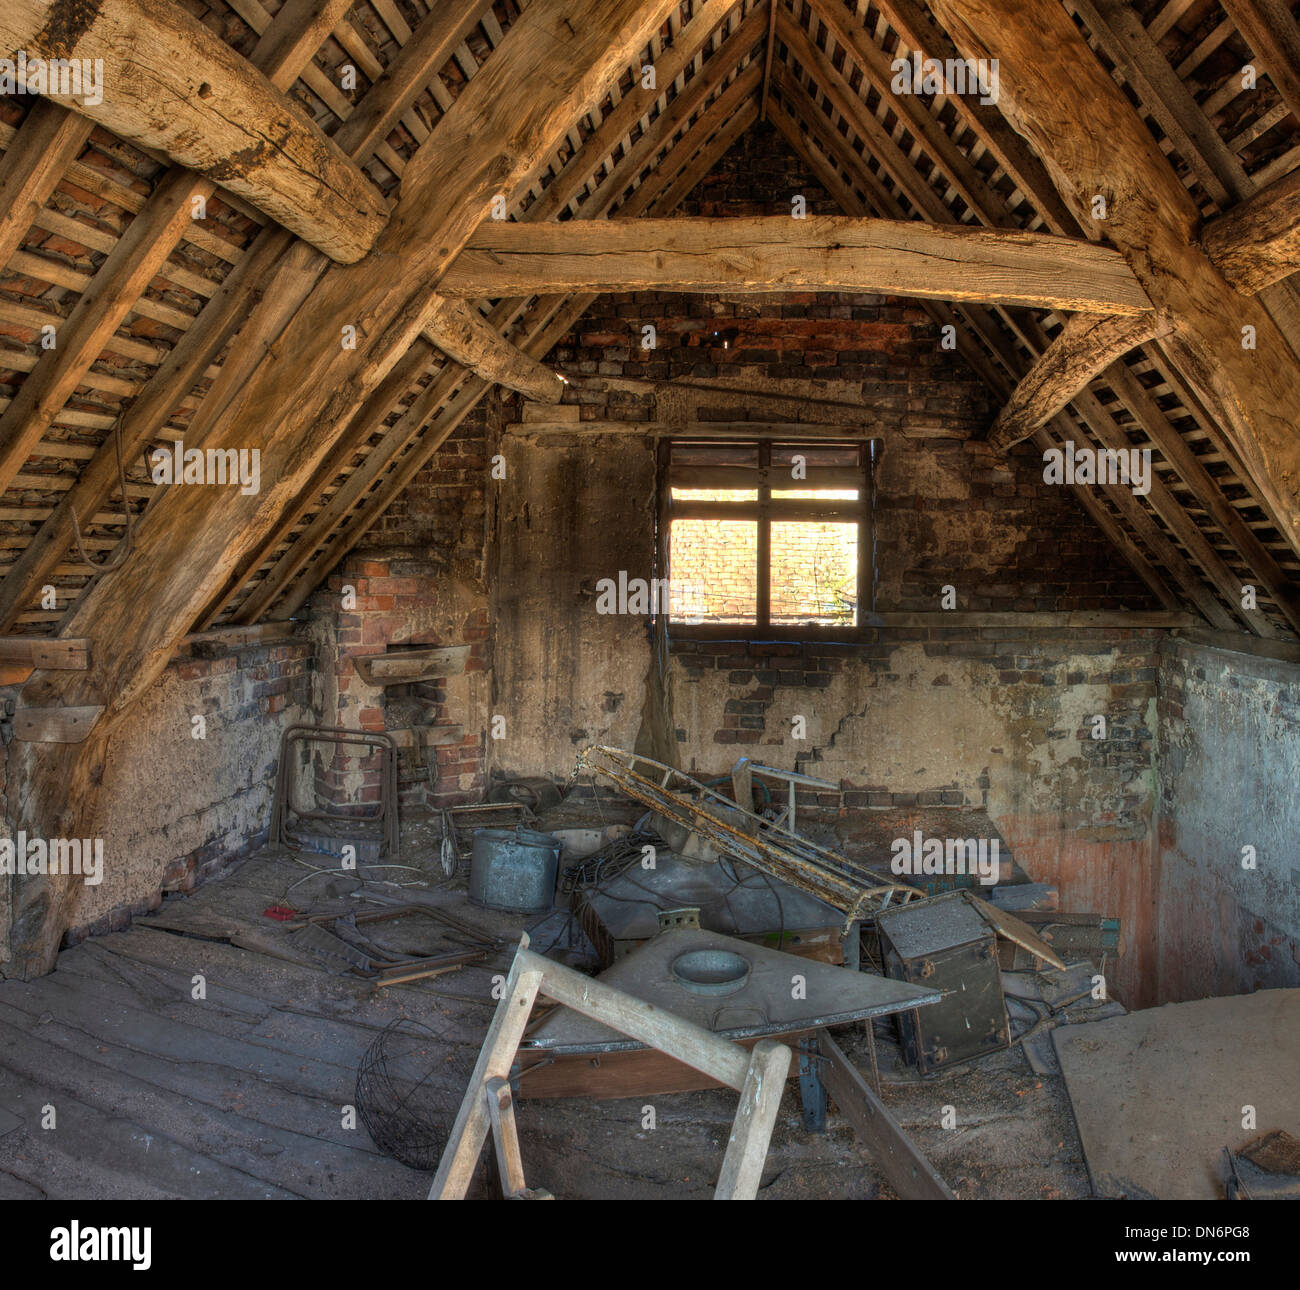 Abandoned Barn Interior Roof Stock Photos And Images